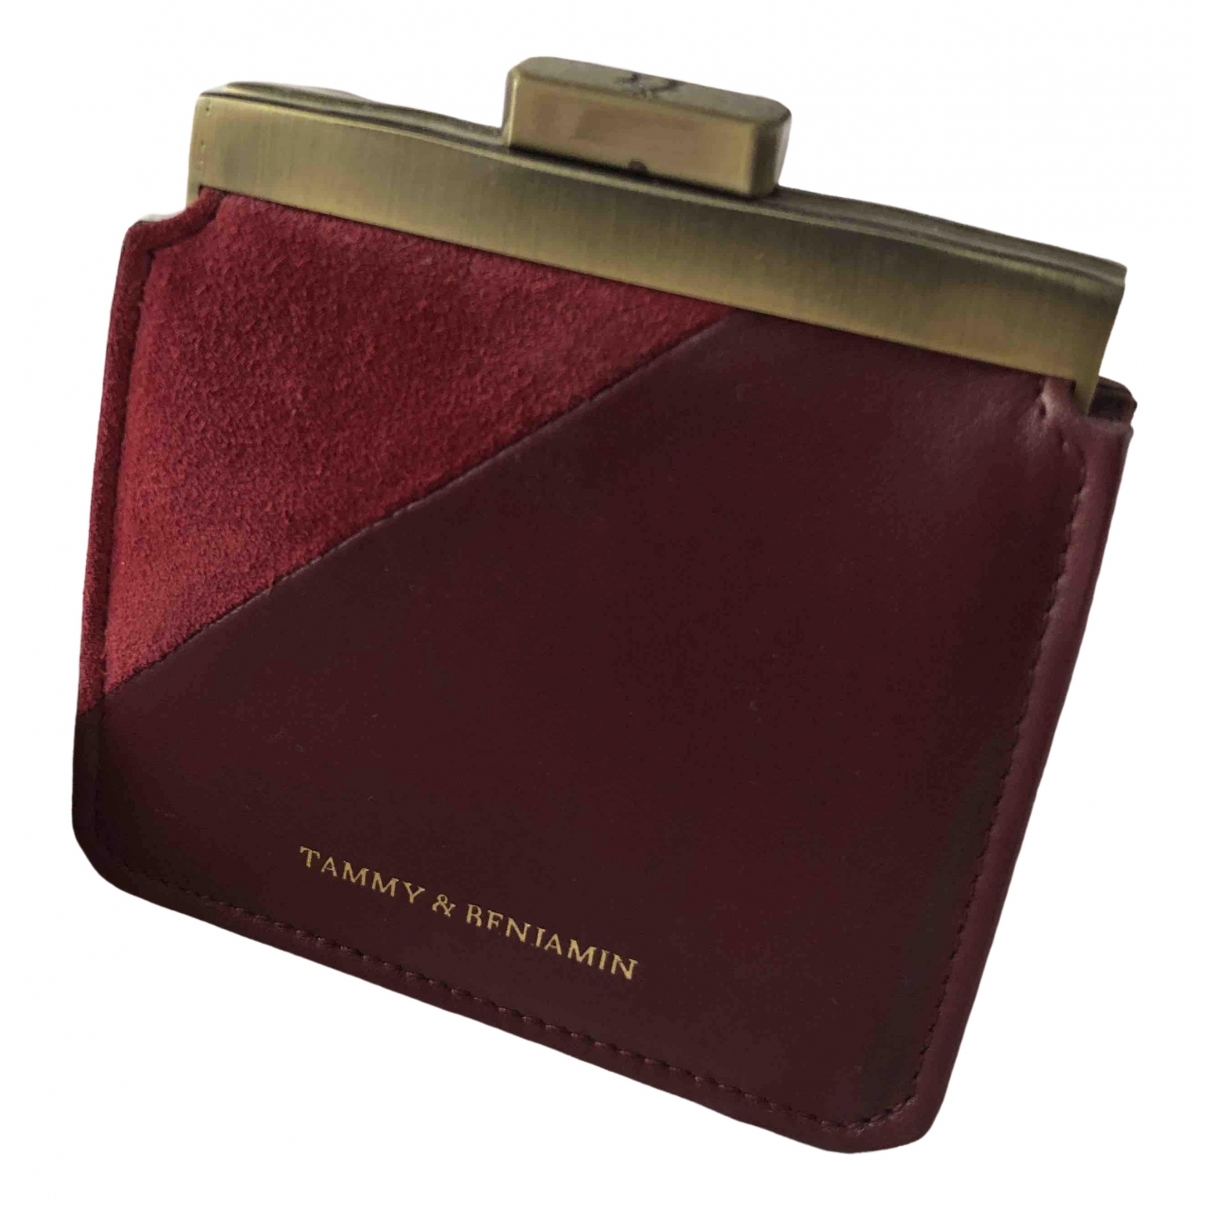 Tammy And Benjamin \N Burgundy Leather Clutch bag for Women \N